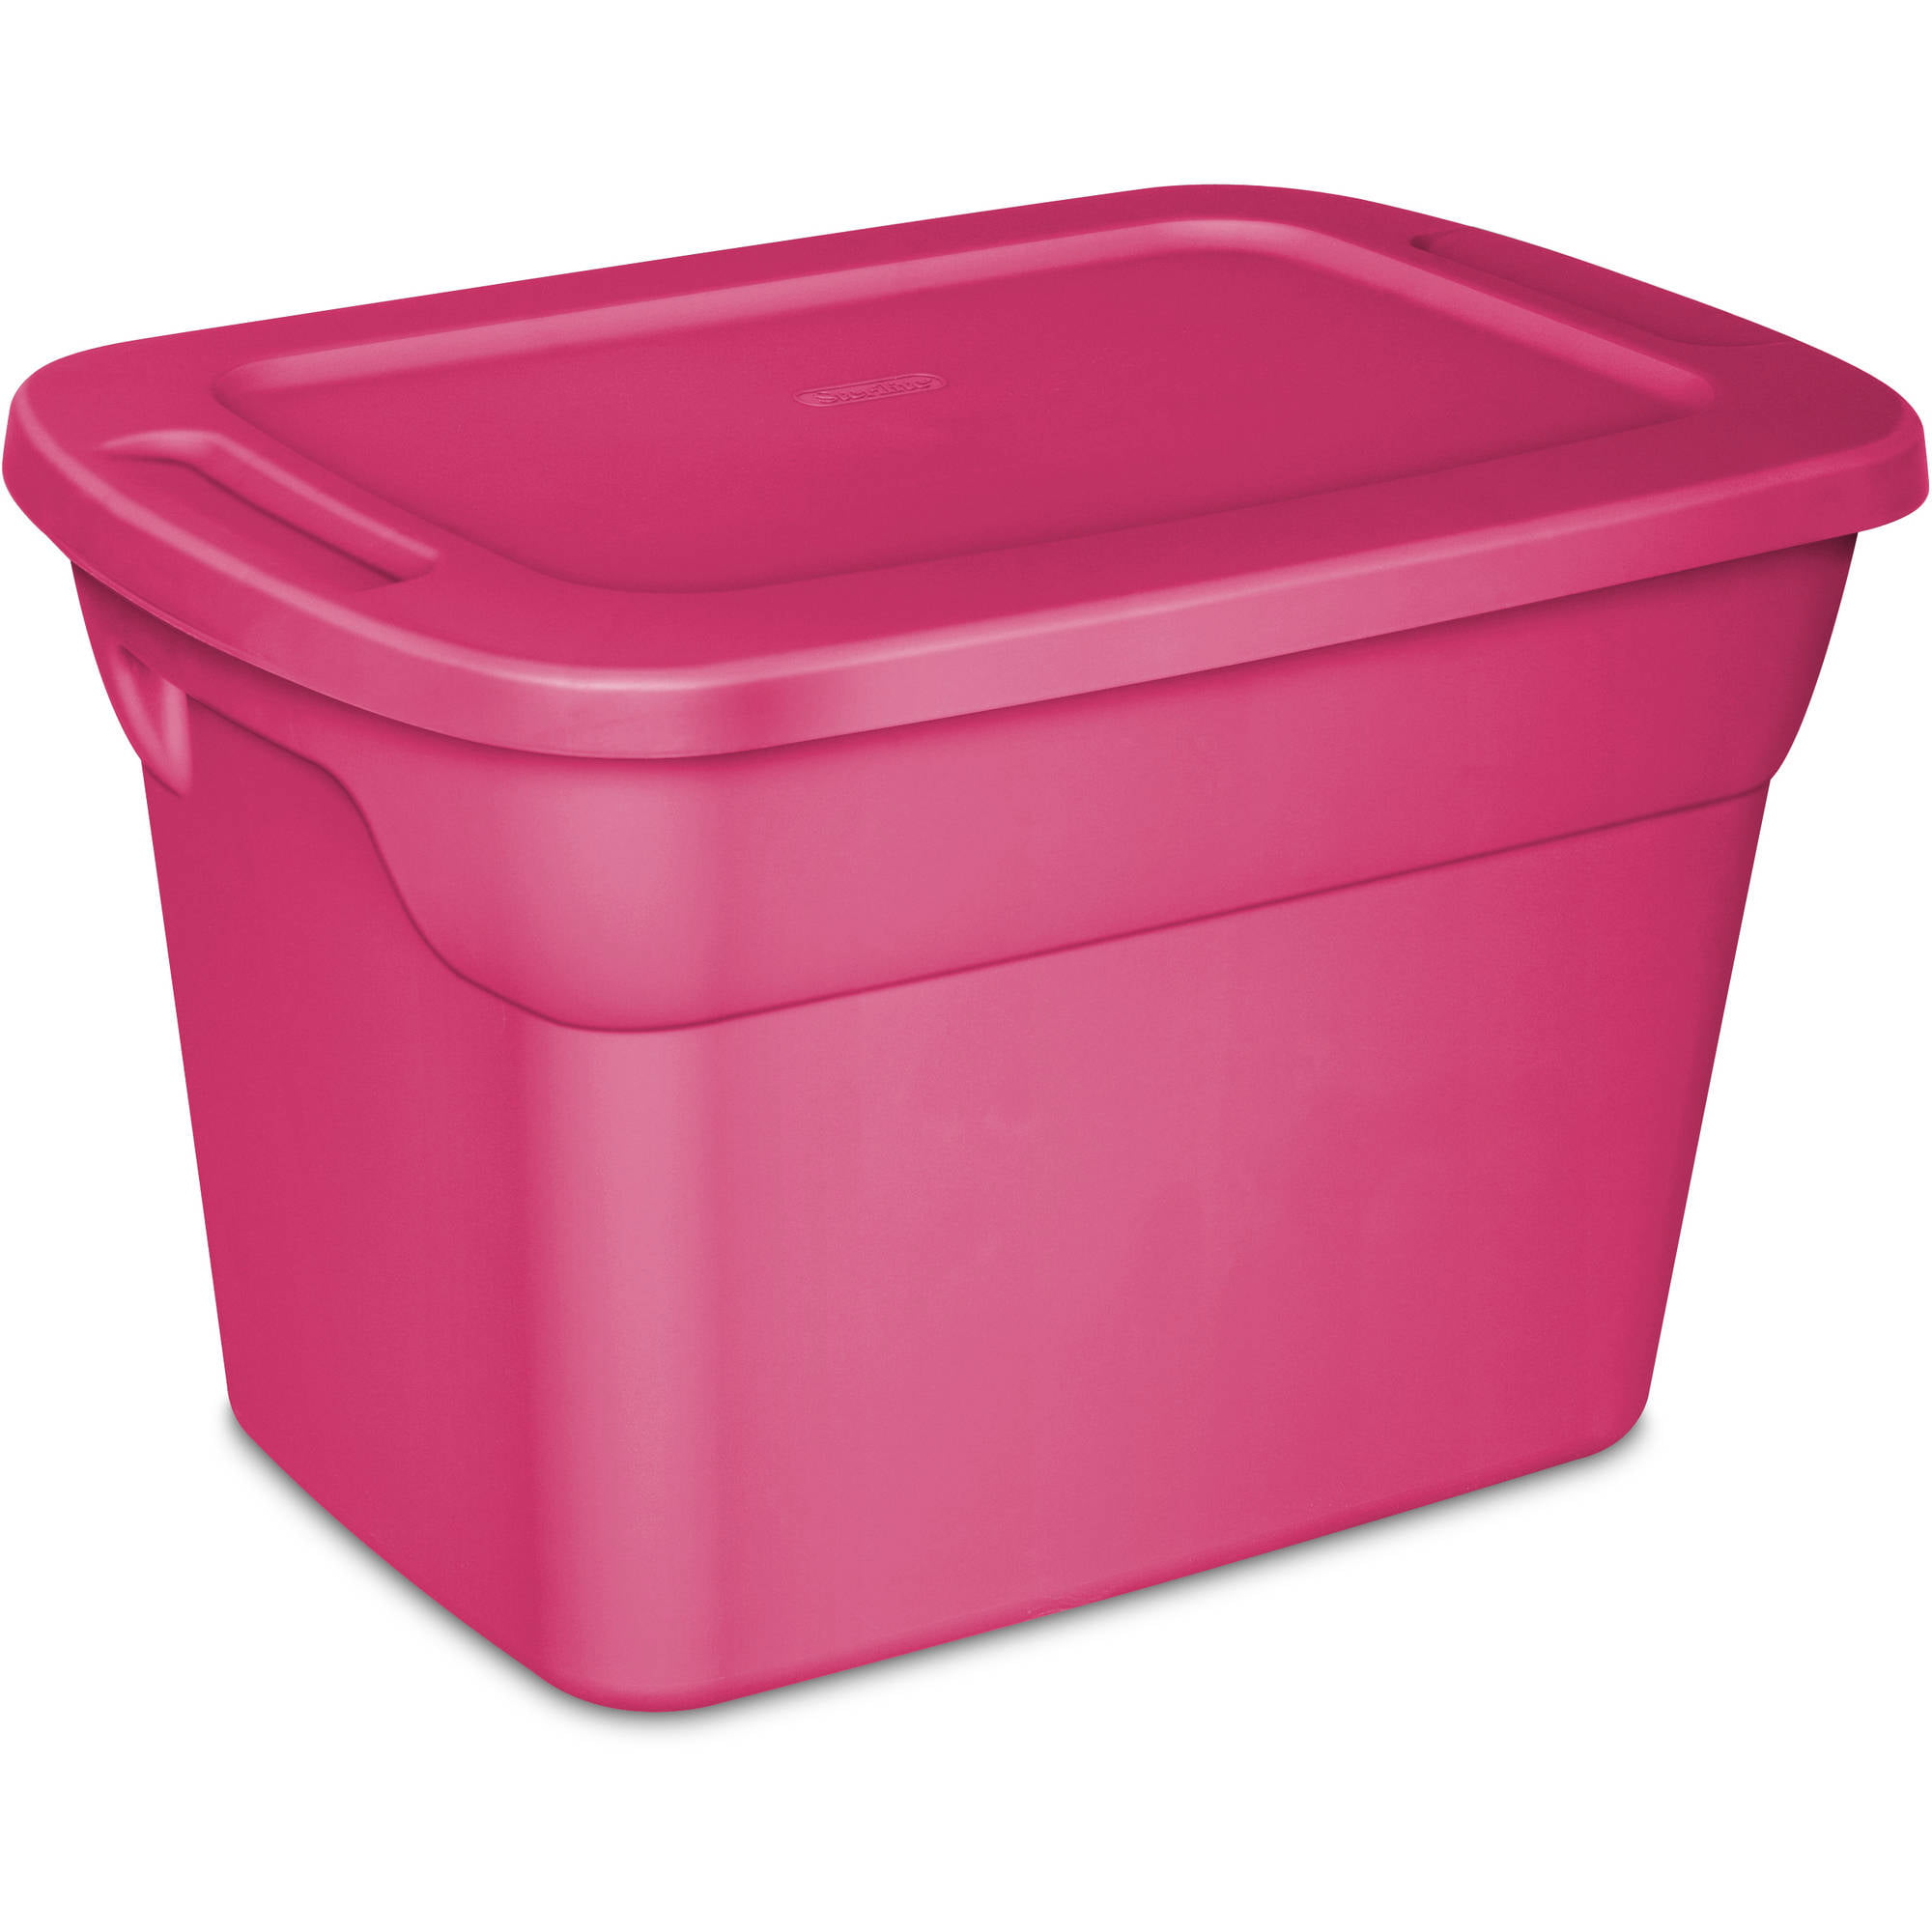 Wonderful 10 Gallon Storage Bins With Lids - 901ca2fe-04cd-4c42-ad77-d1102efd3011_1  Snapshot_3387.jpeg